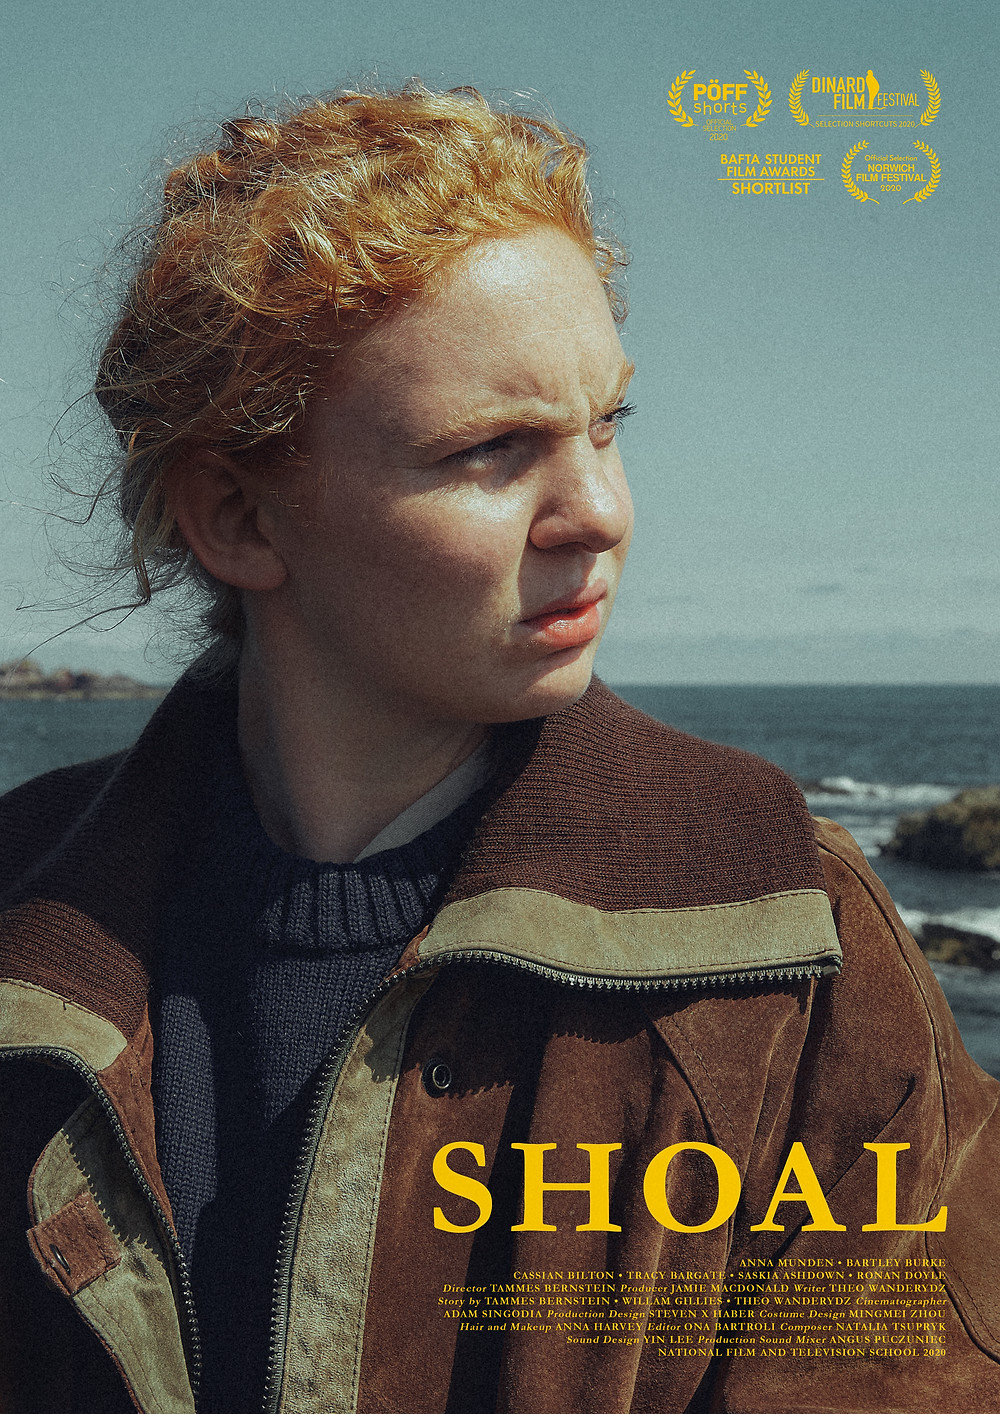 Poster for Shoal showing protagonist.